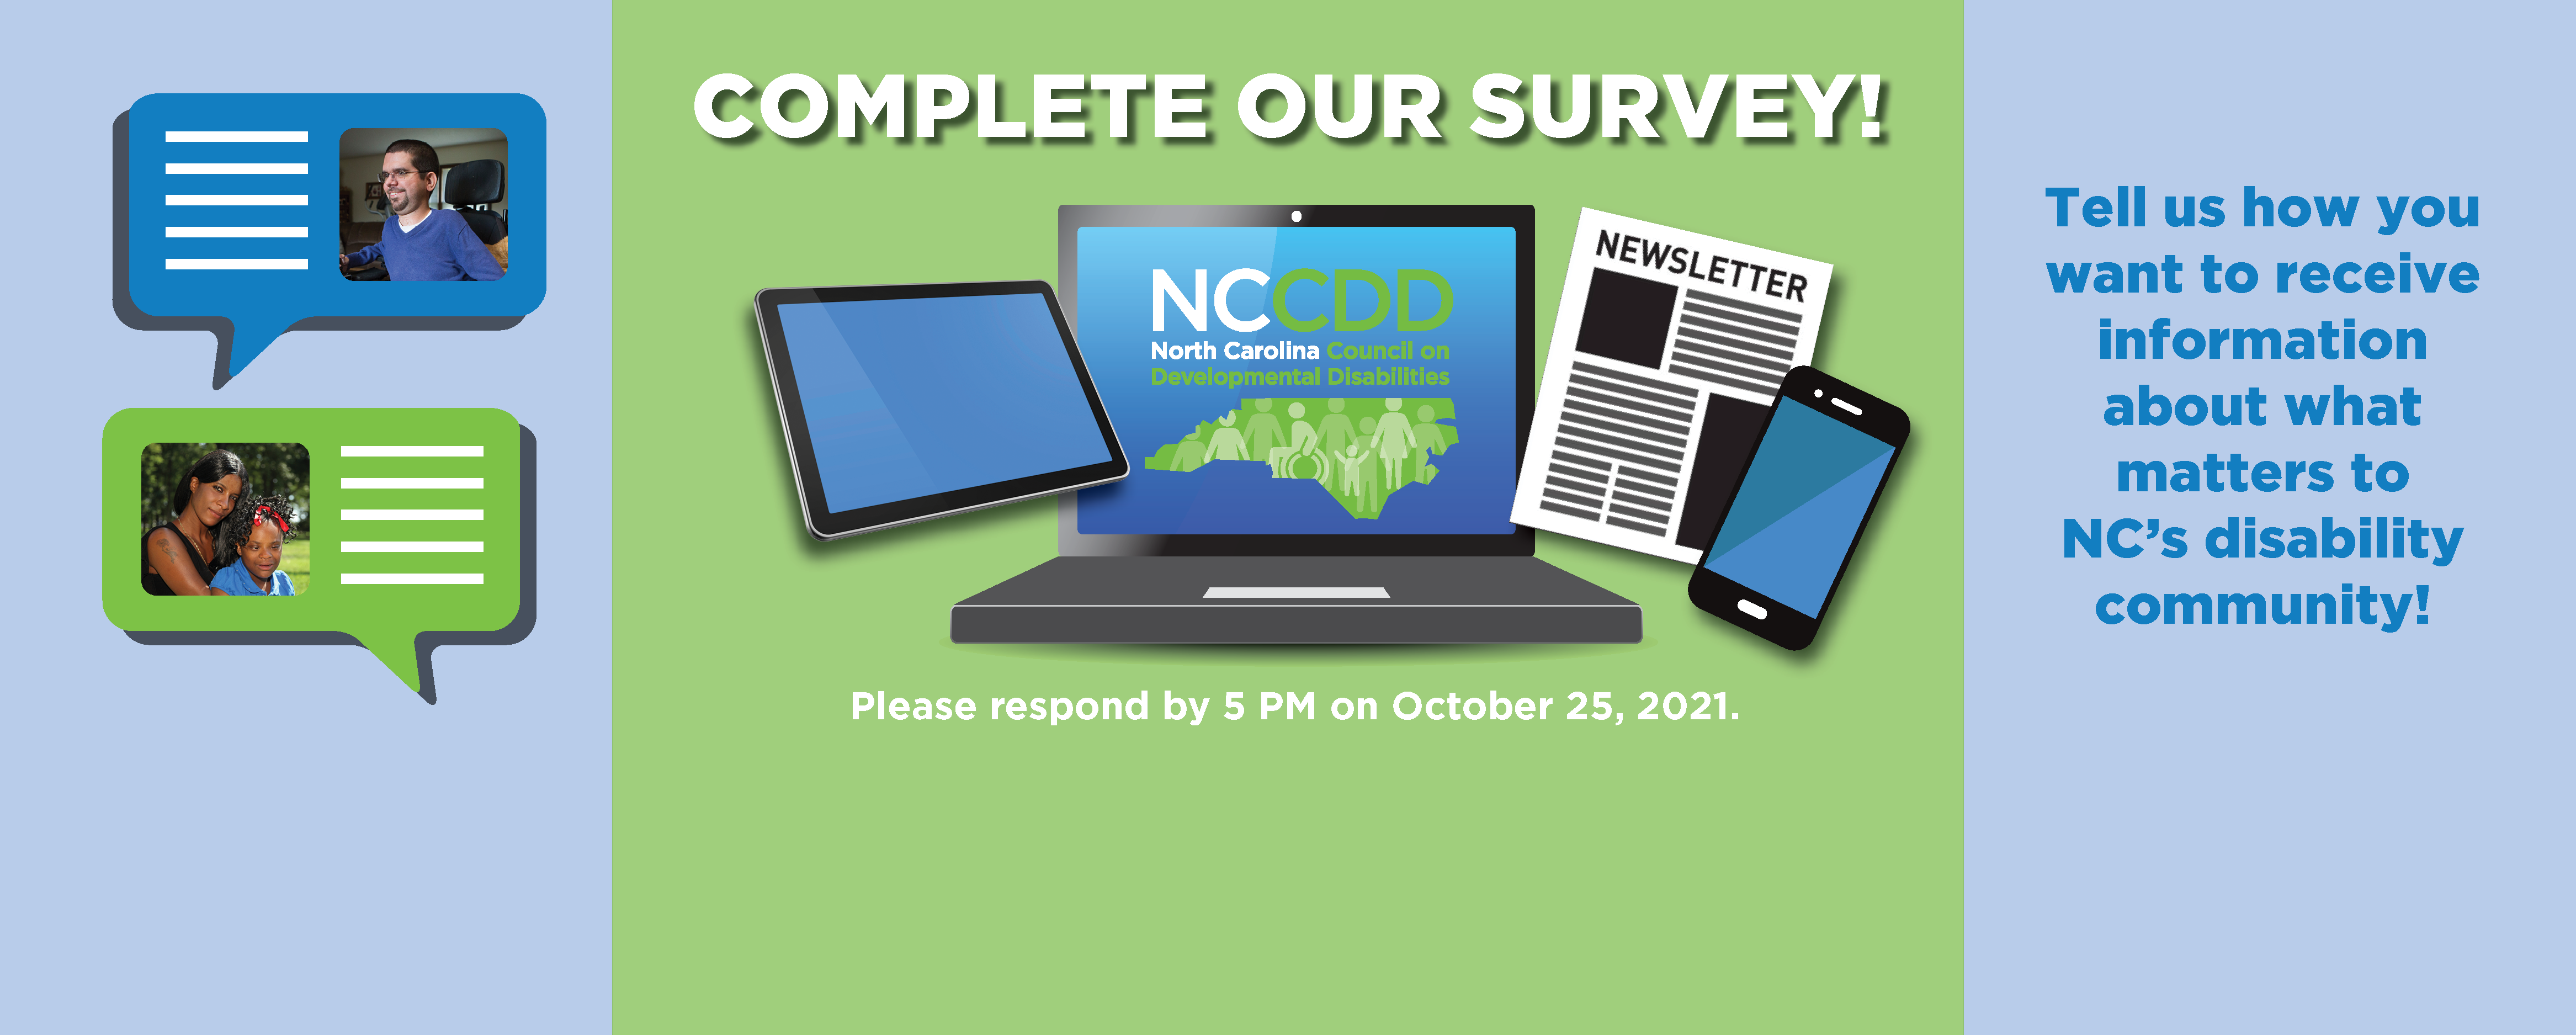 Tell us how you want to receive information about what matters to NC's disability community!